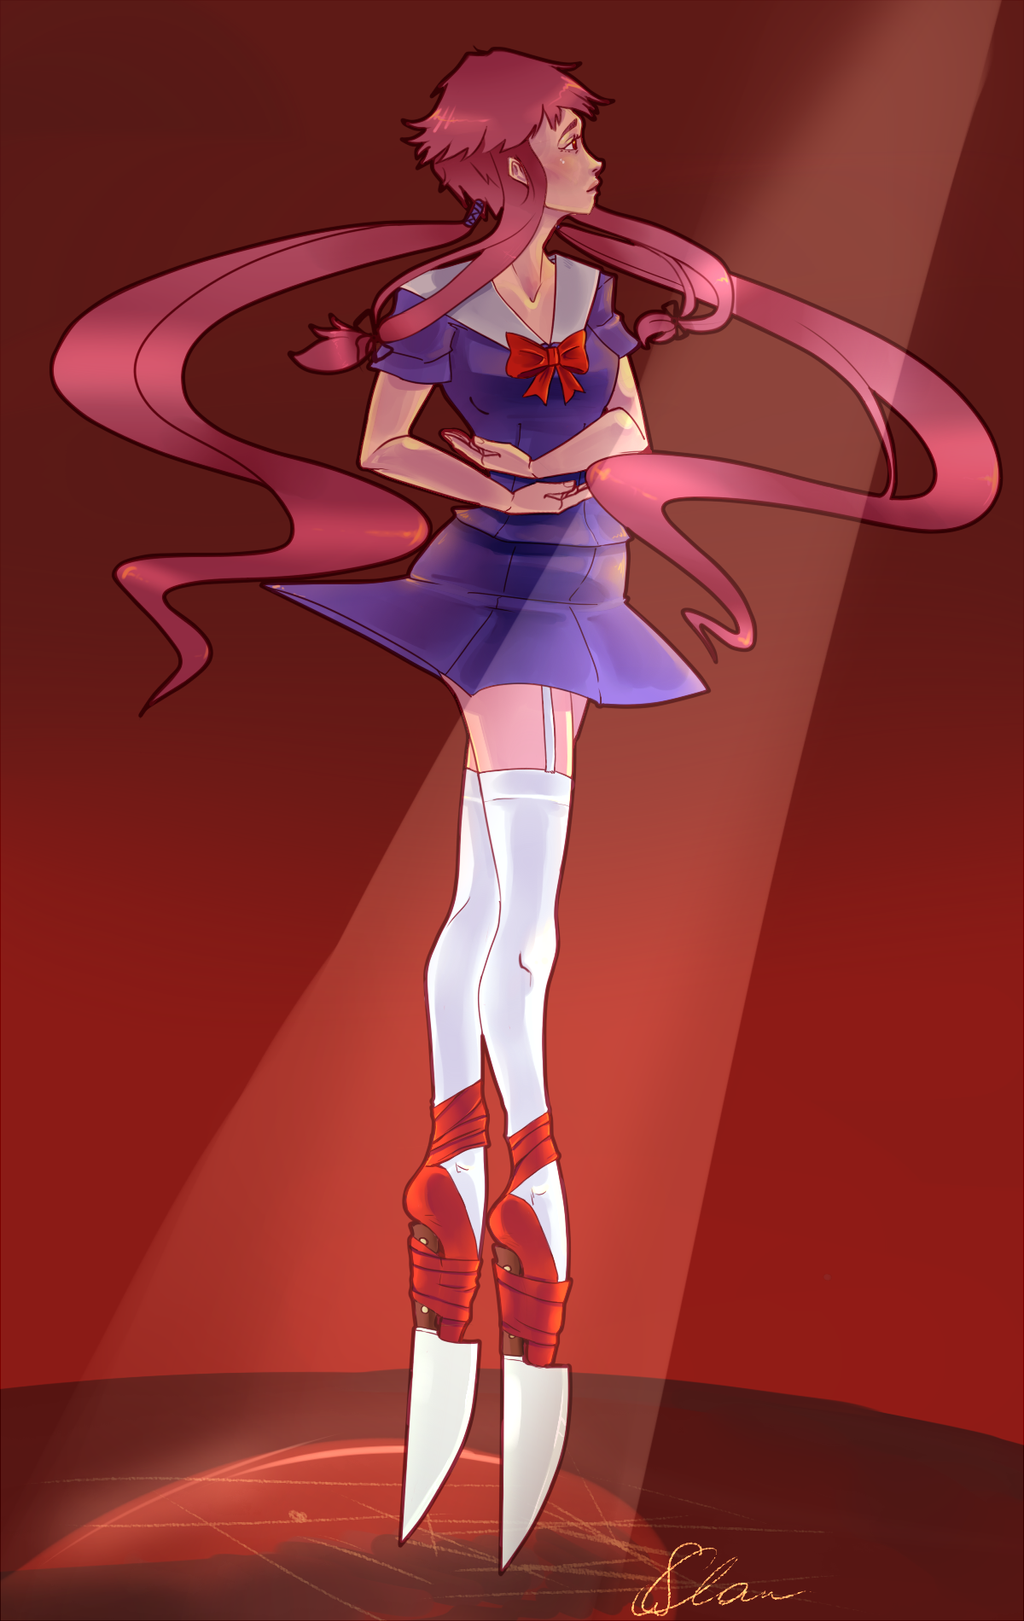 Gasai Yuno on knives by 0127 on DeviantArt